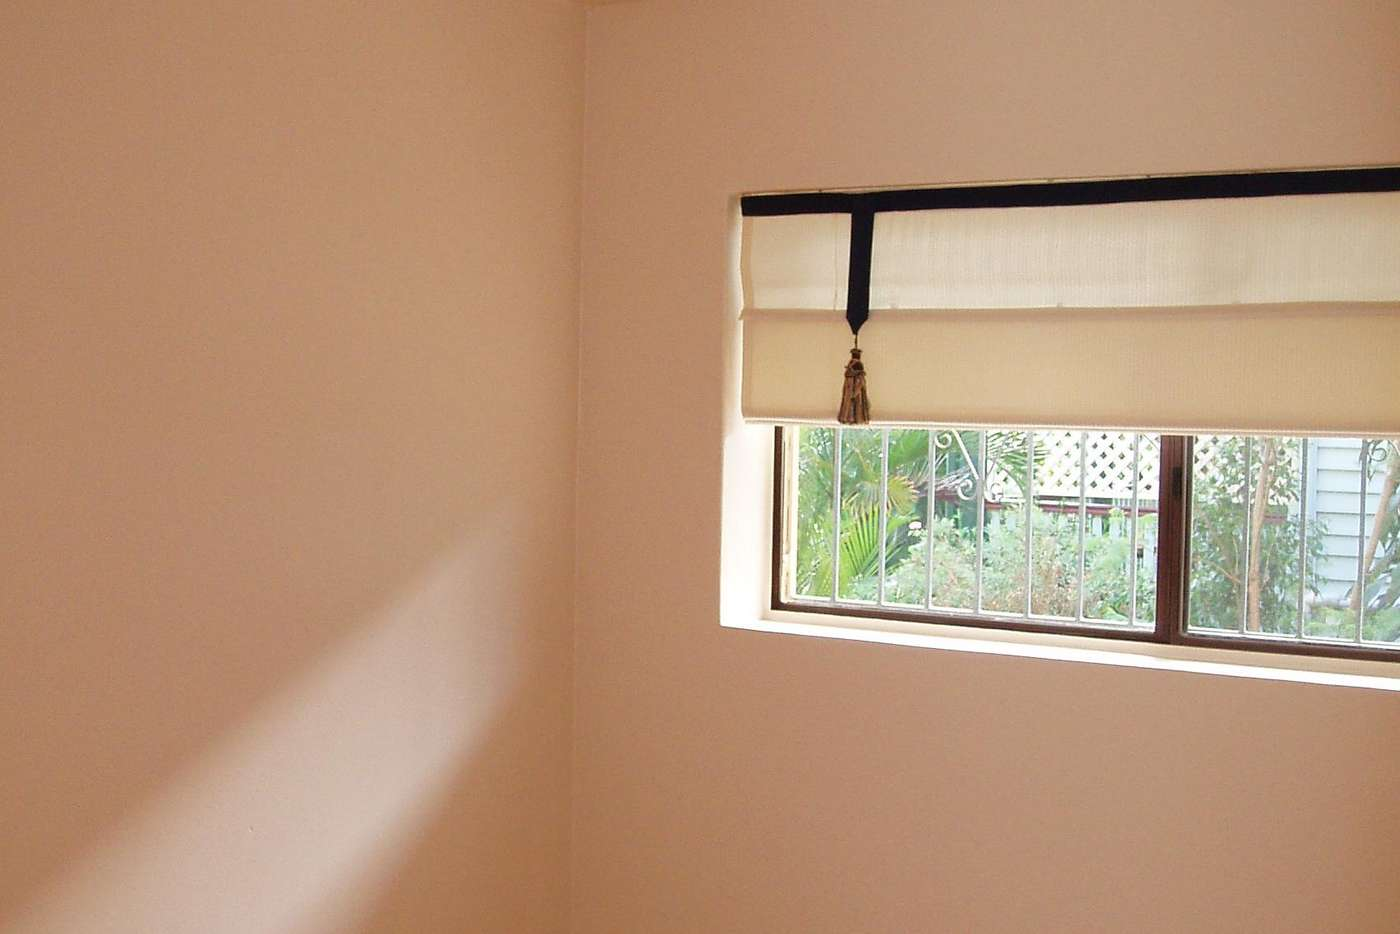 Sixth view of Homely unit listing, 2/10 Fifth Avenue, Kedron QLD 4031